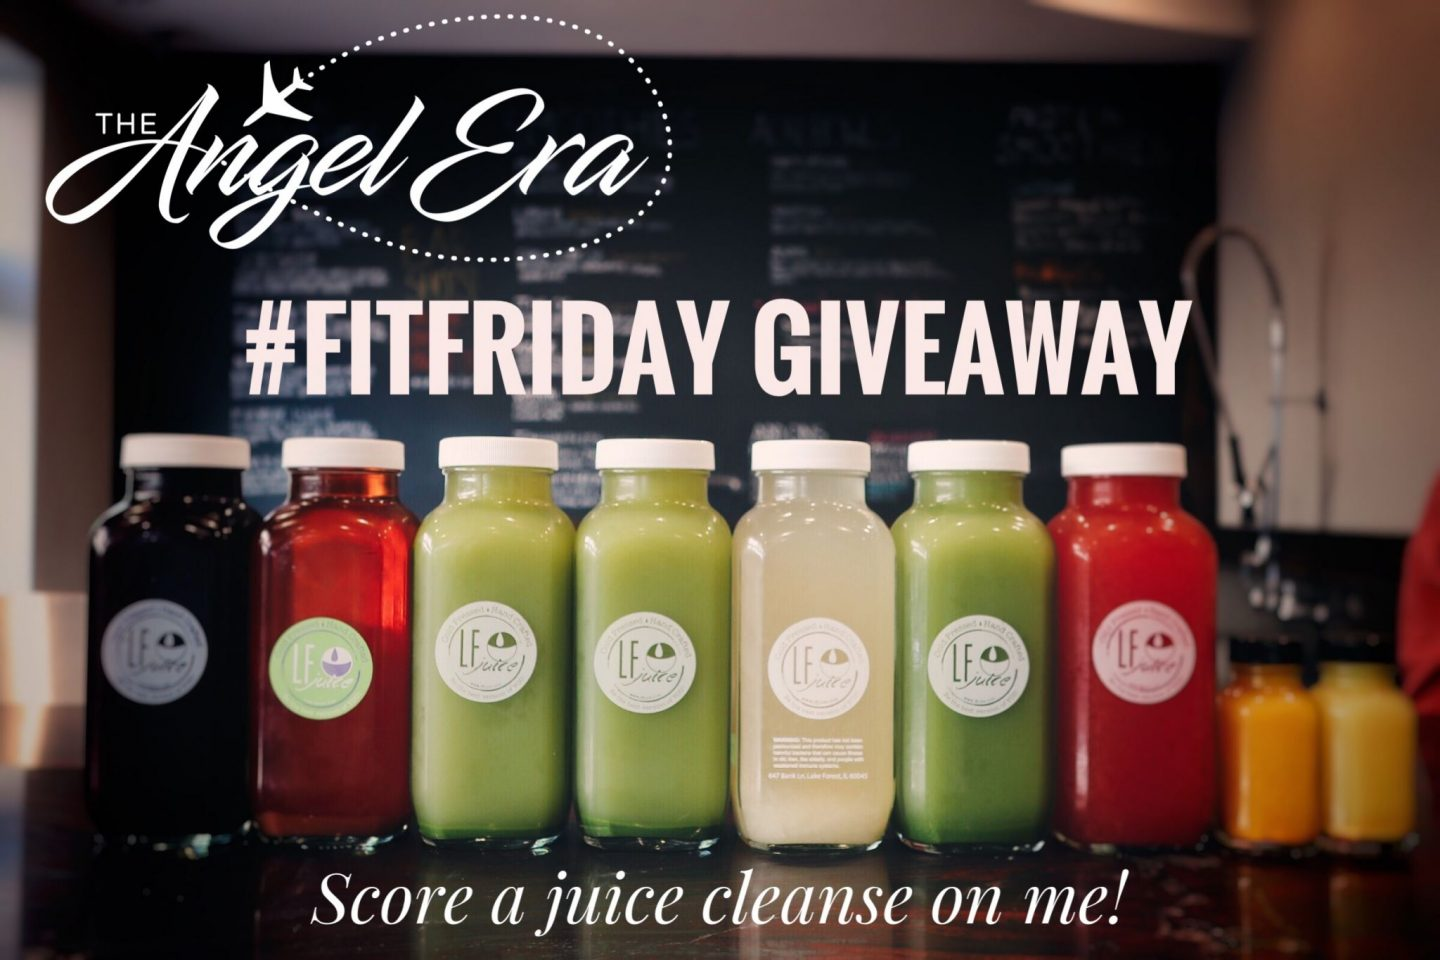 Issa Giveway: Win a Two-Day Juice Cleanse From TheAngelEra.com